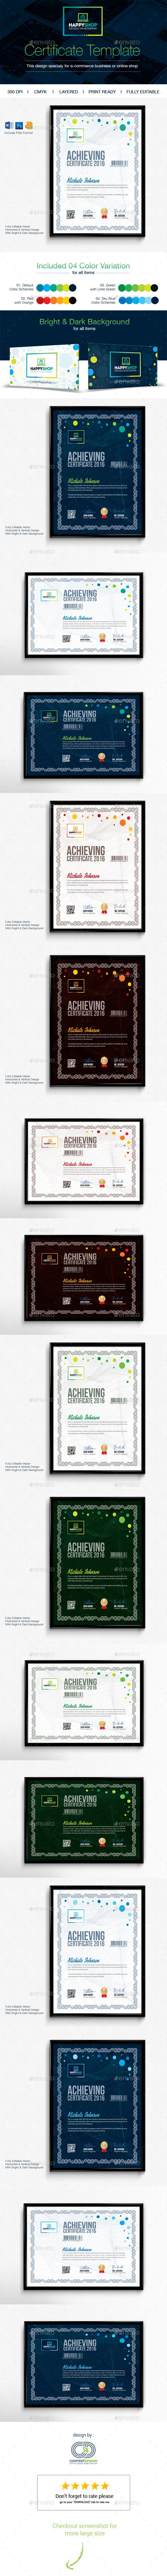 Certificate Template PSD, Vector EPS, AI #design Download: http://graphicriver.net/item/certificate-template/14481864?ref=ksioks